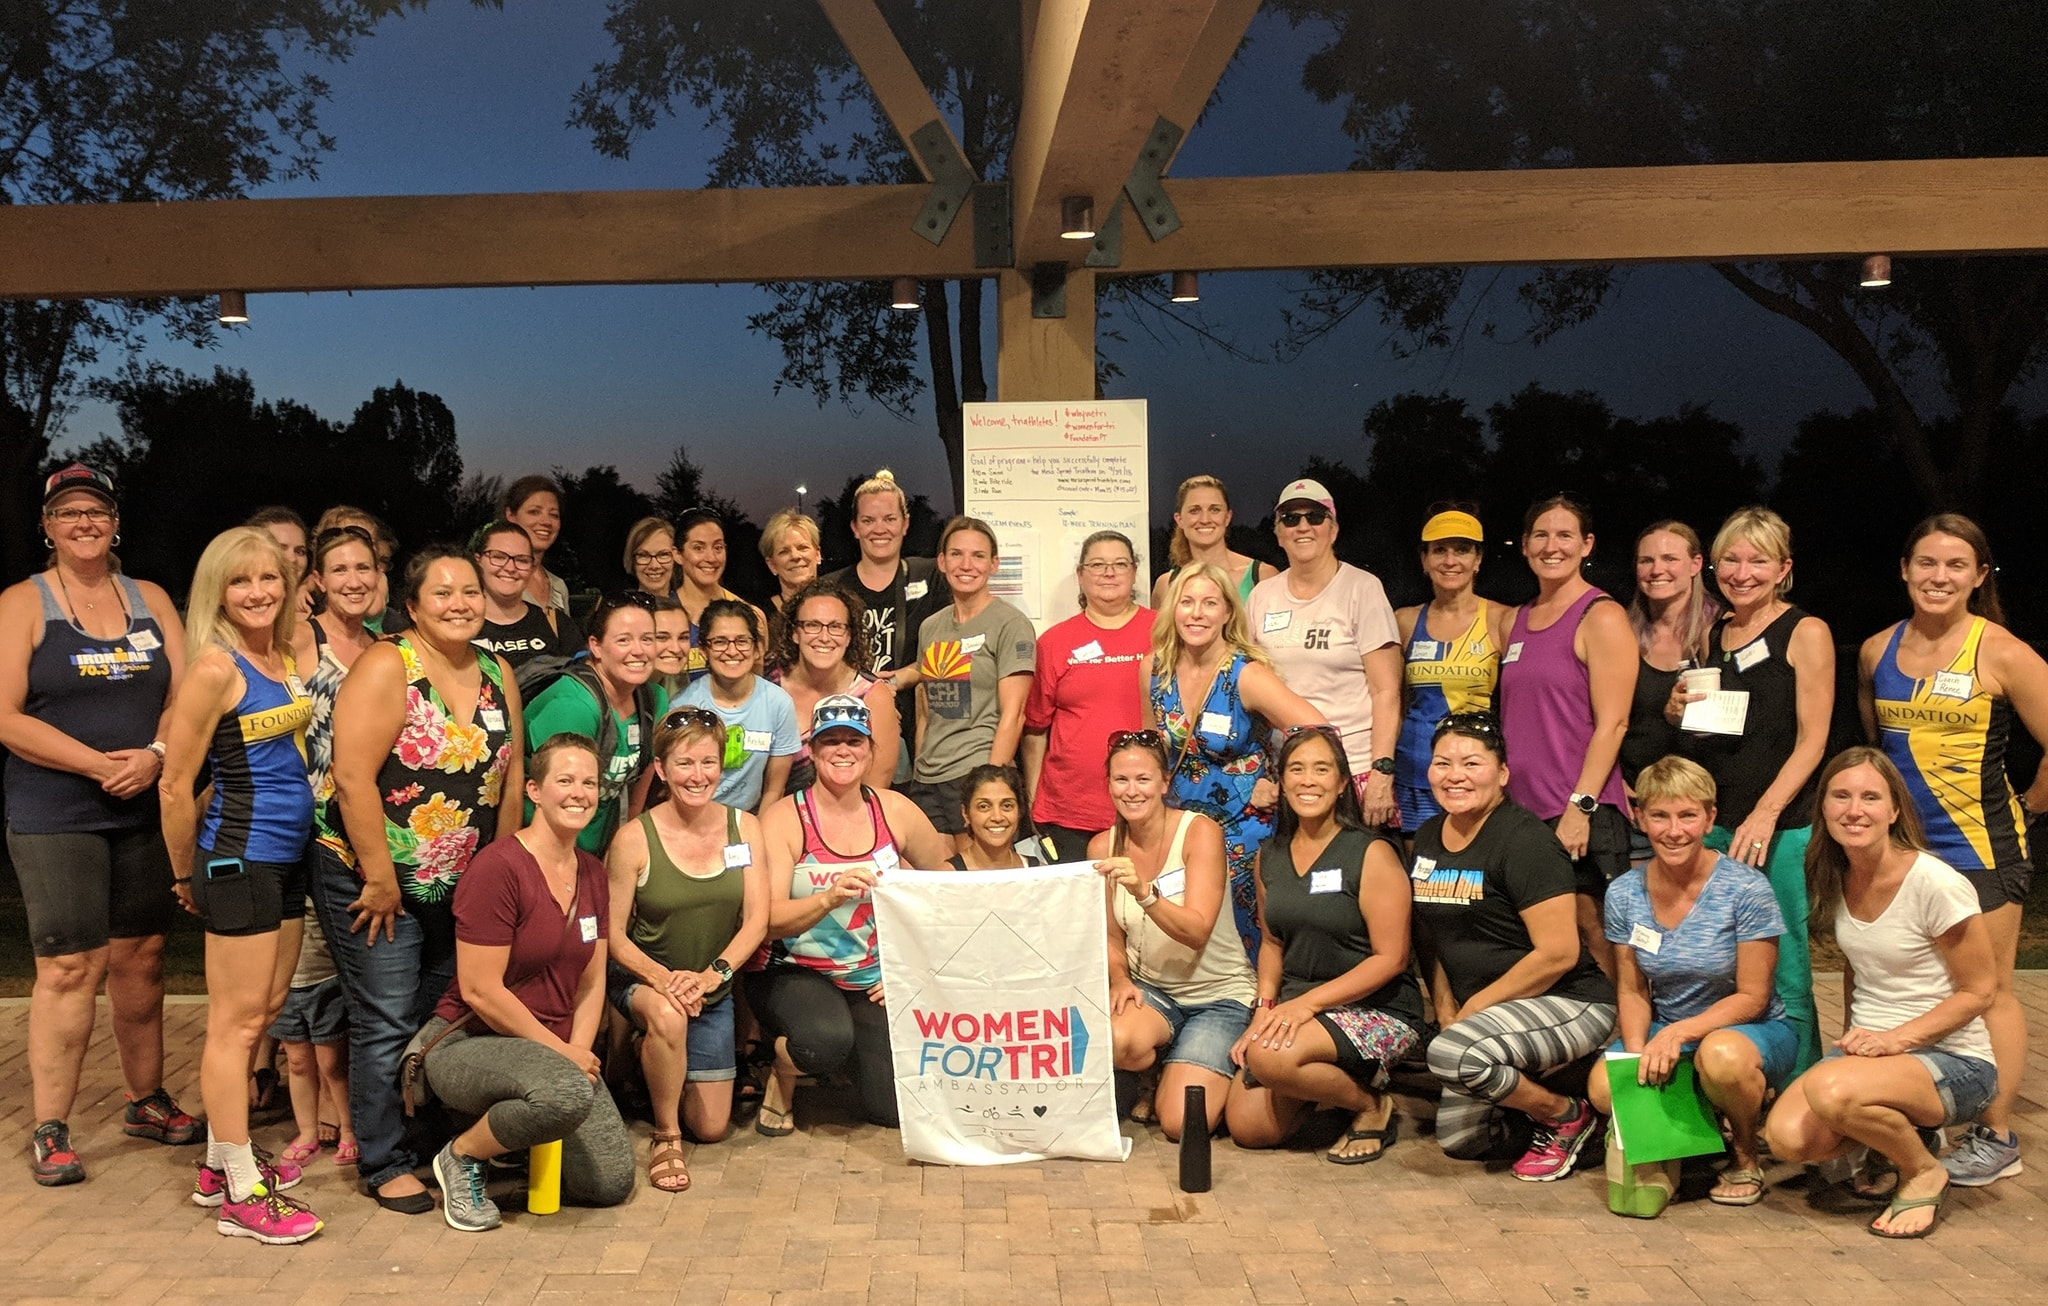 June 28, 2018, Kick-Off Party, Women For Tri: Introduction To Triathlon Training Program